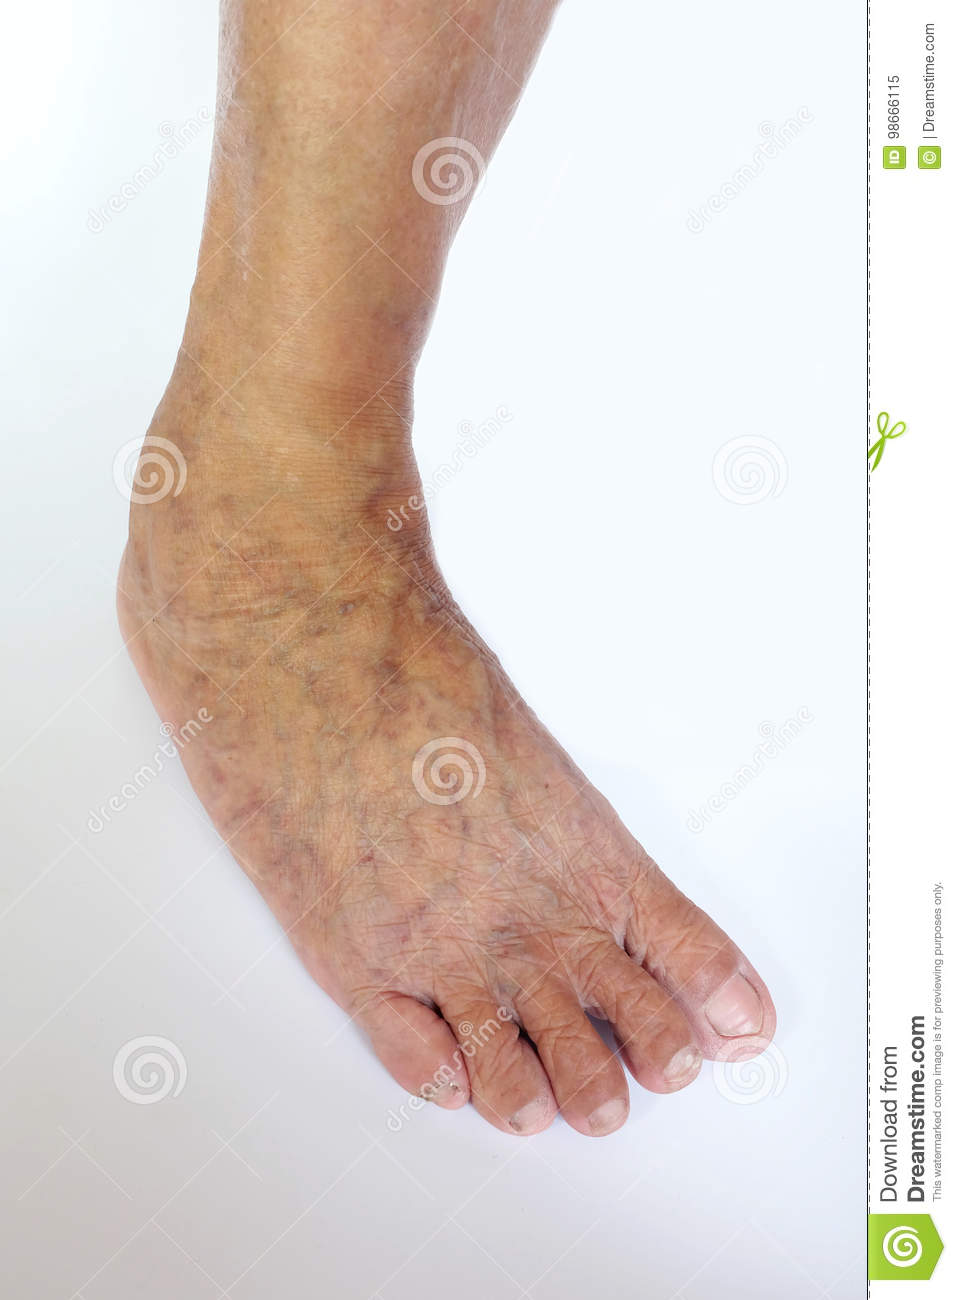 Varicose Veins In The Feet And Legs Stock Image Image Of Patient